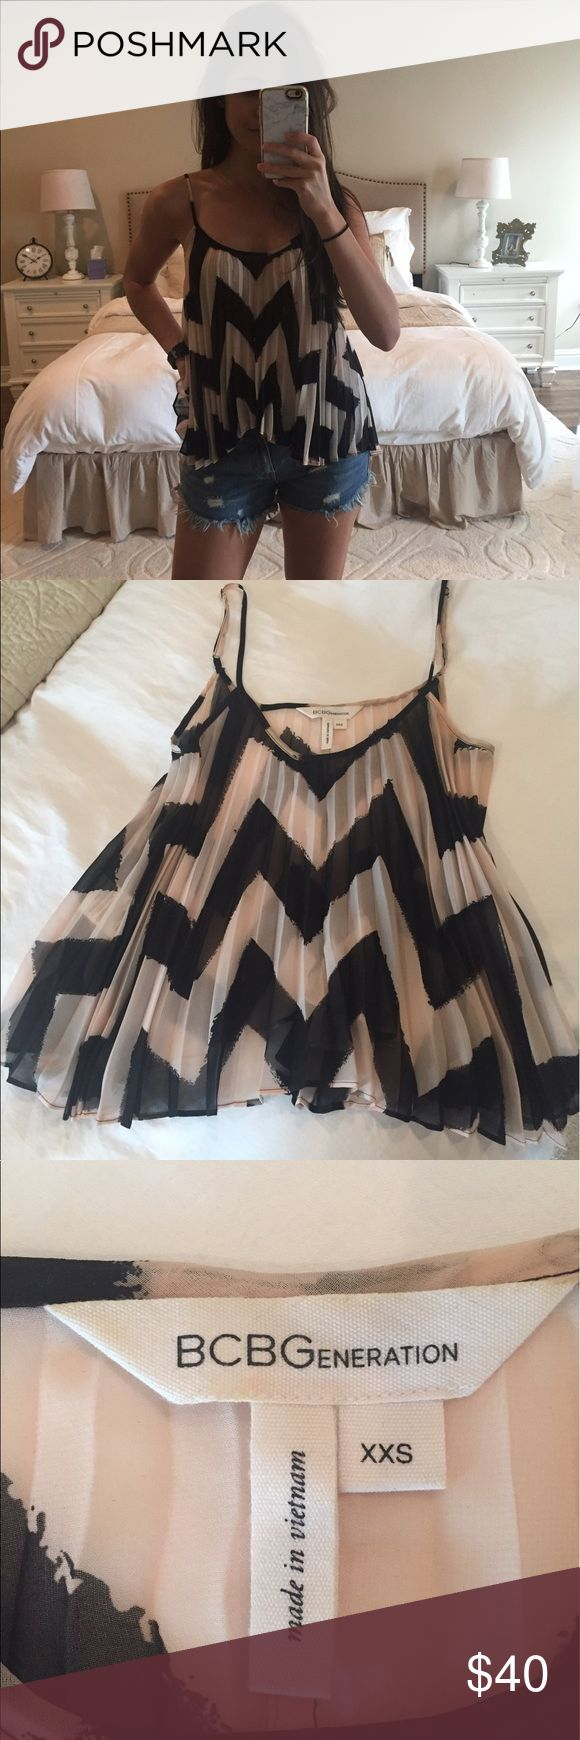 BCBG top Pleated flowy tank top with black and light pink chevron stripes. XXS but fits big, more like an XS or S. Adjustable straps BCBGeneration Tops Tank Tops